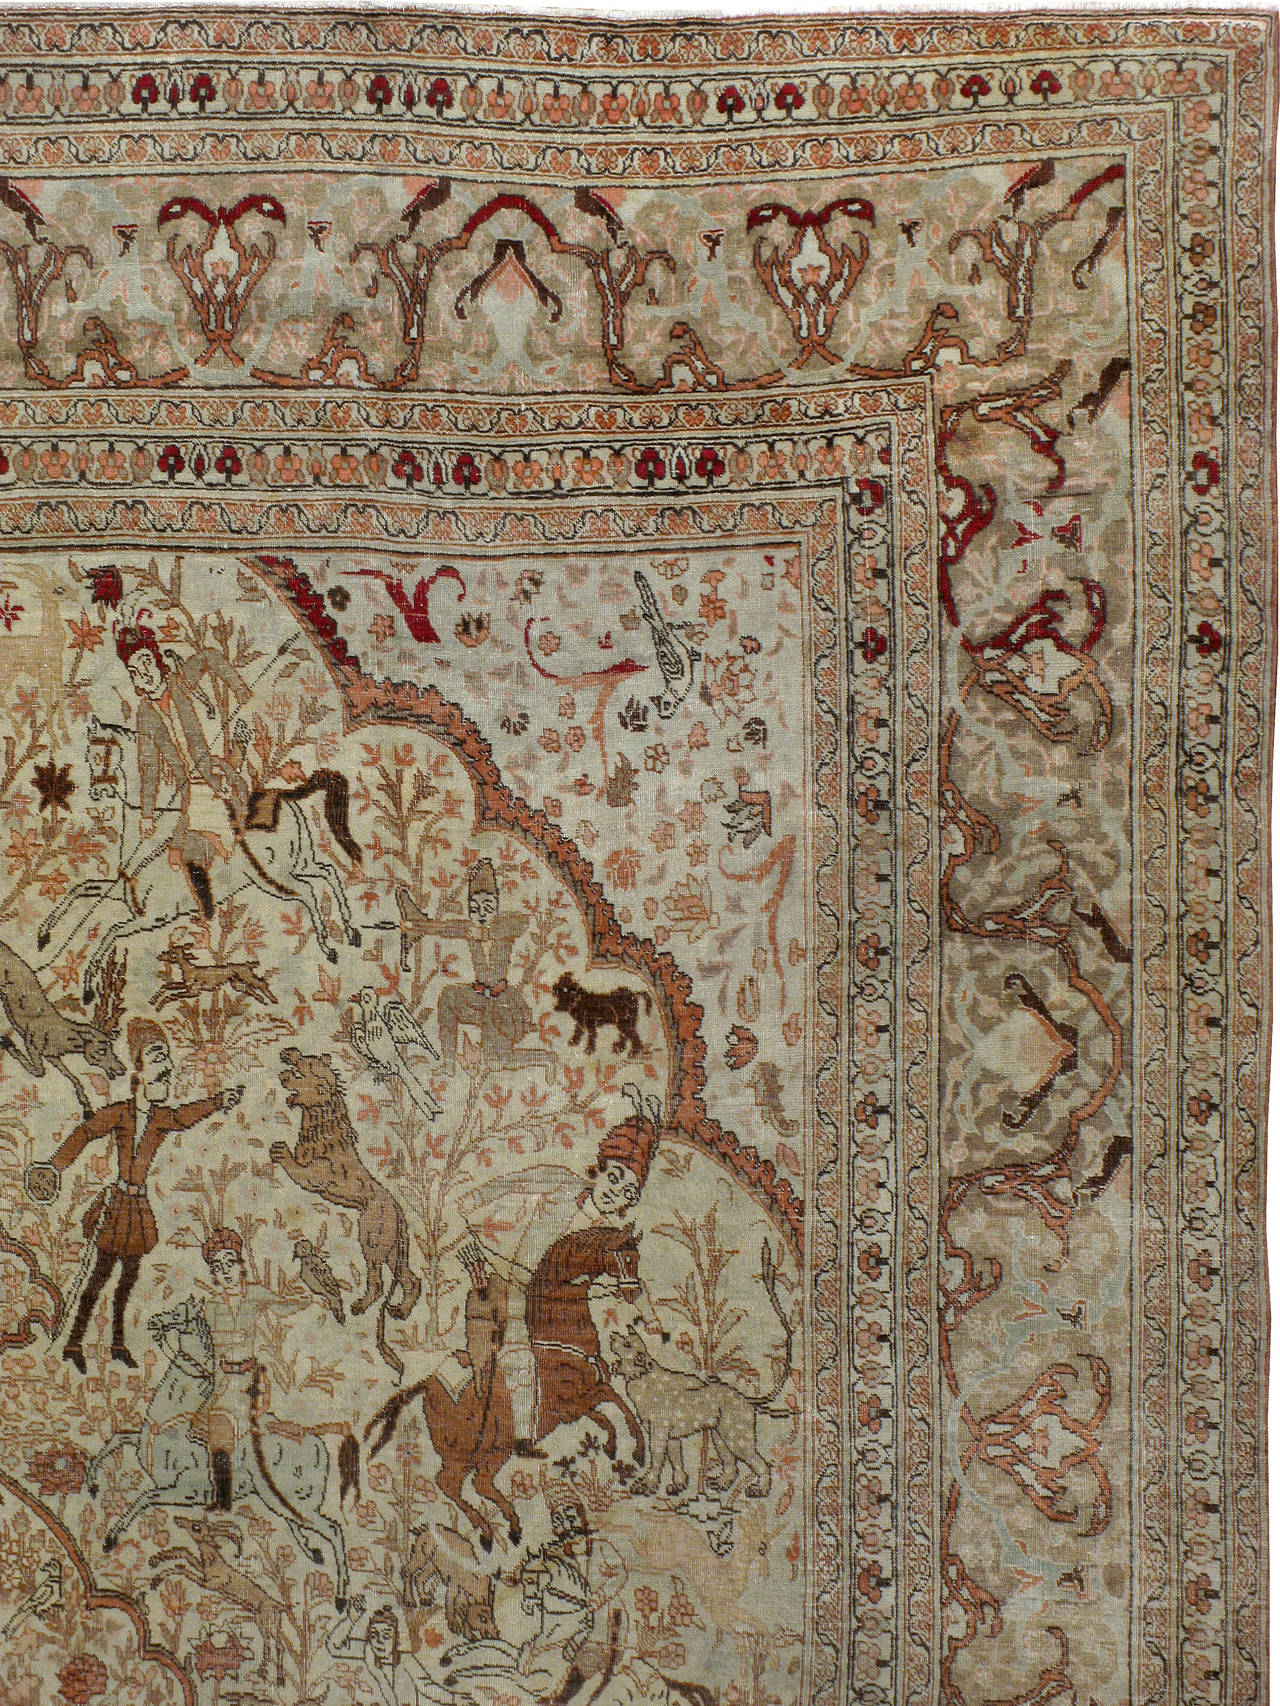 Hand-Woven Antique Persian Tabriz Pictorial Rug For Sale